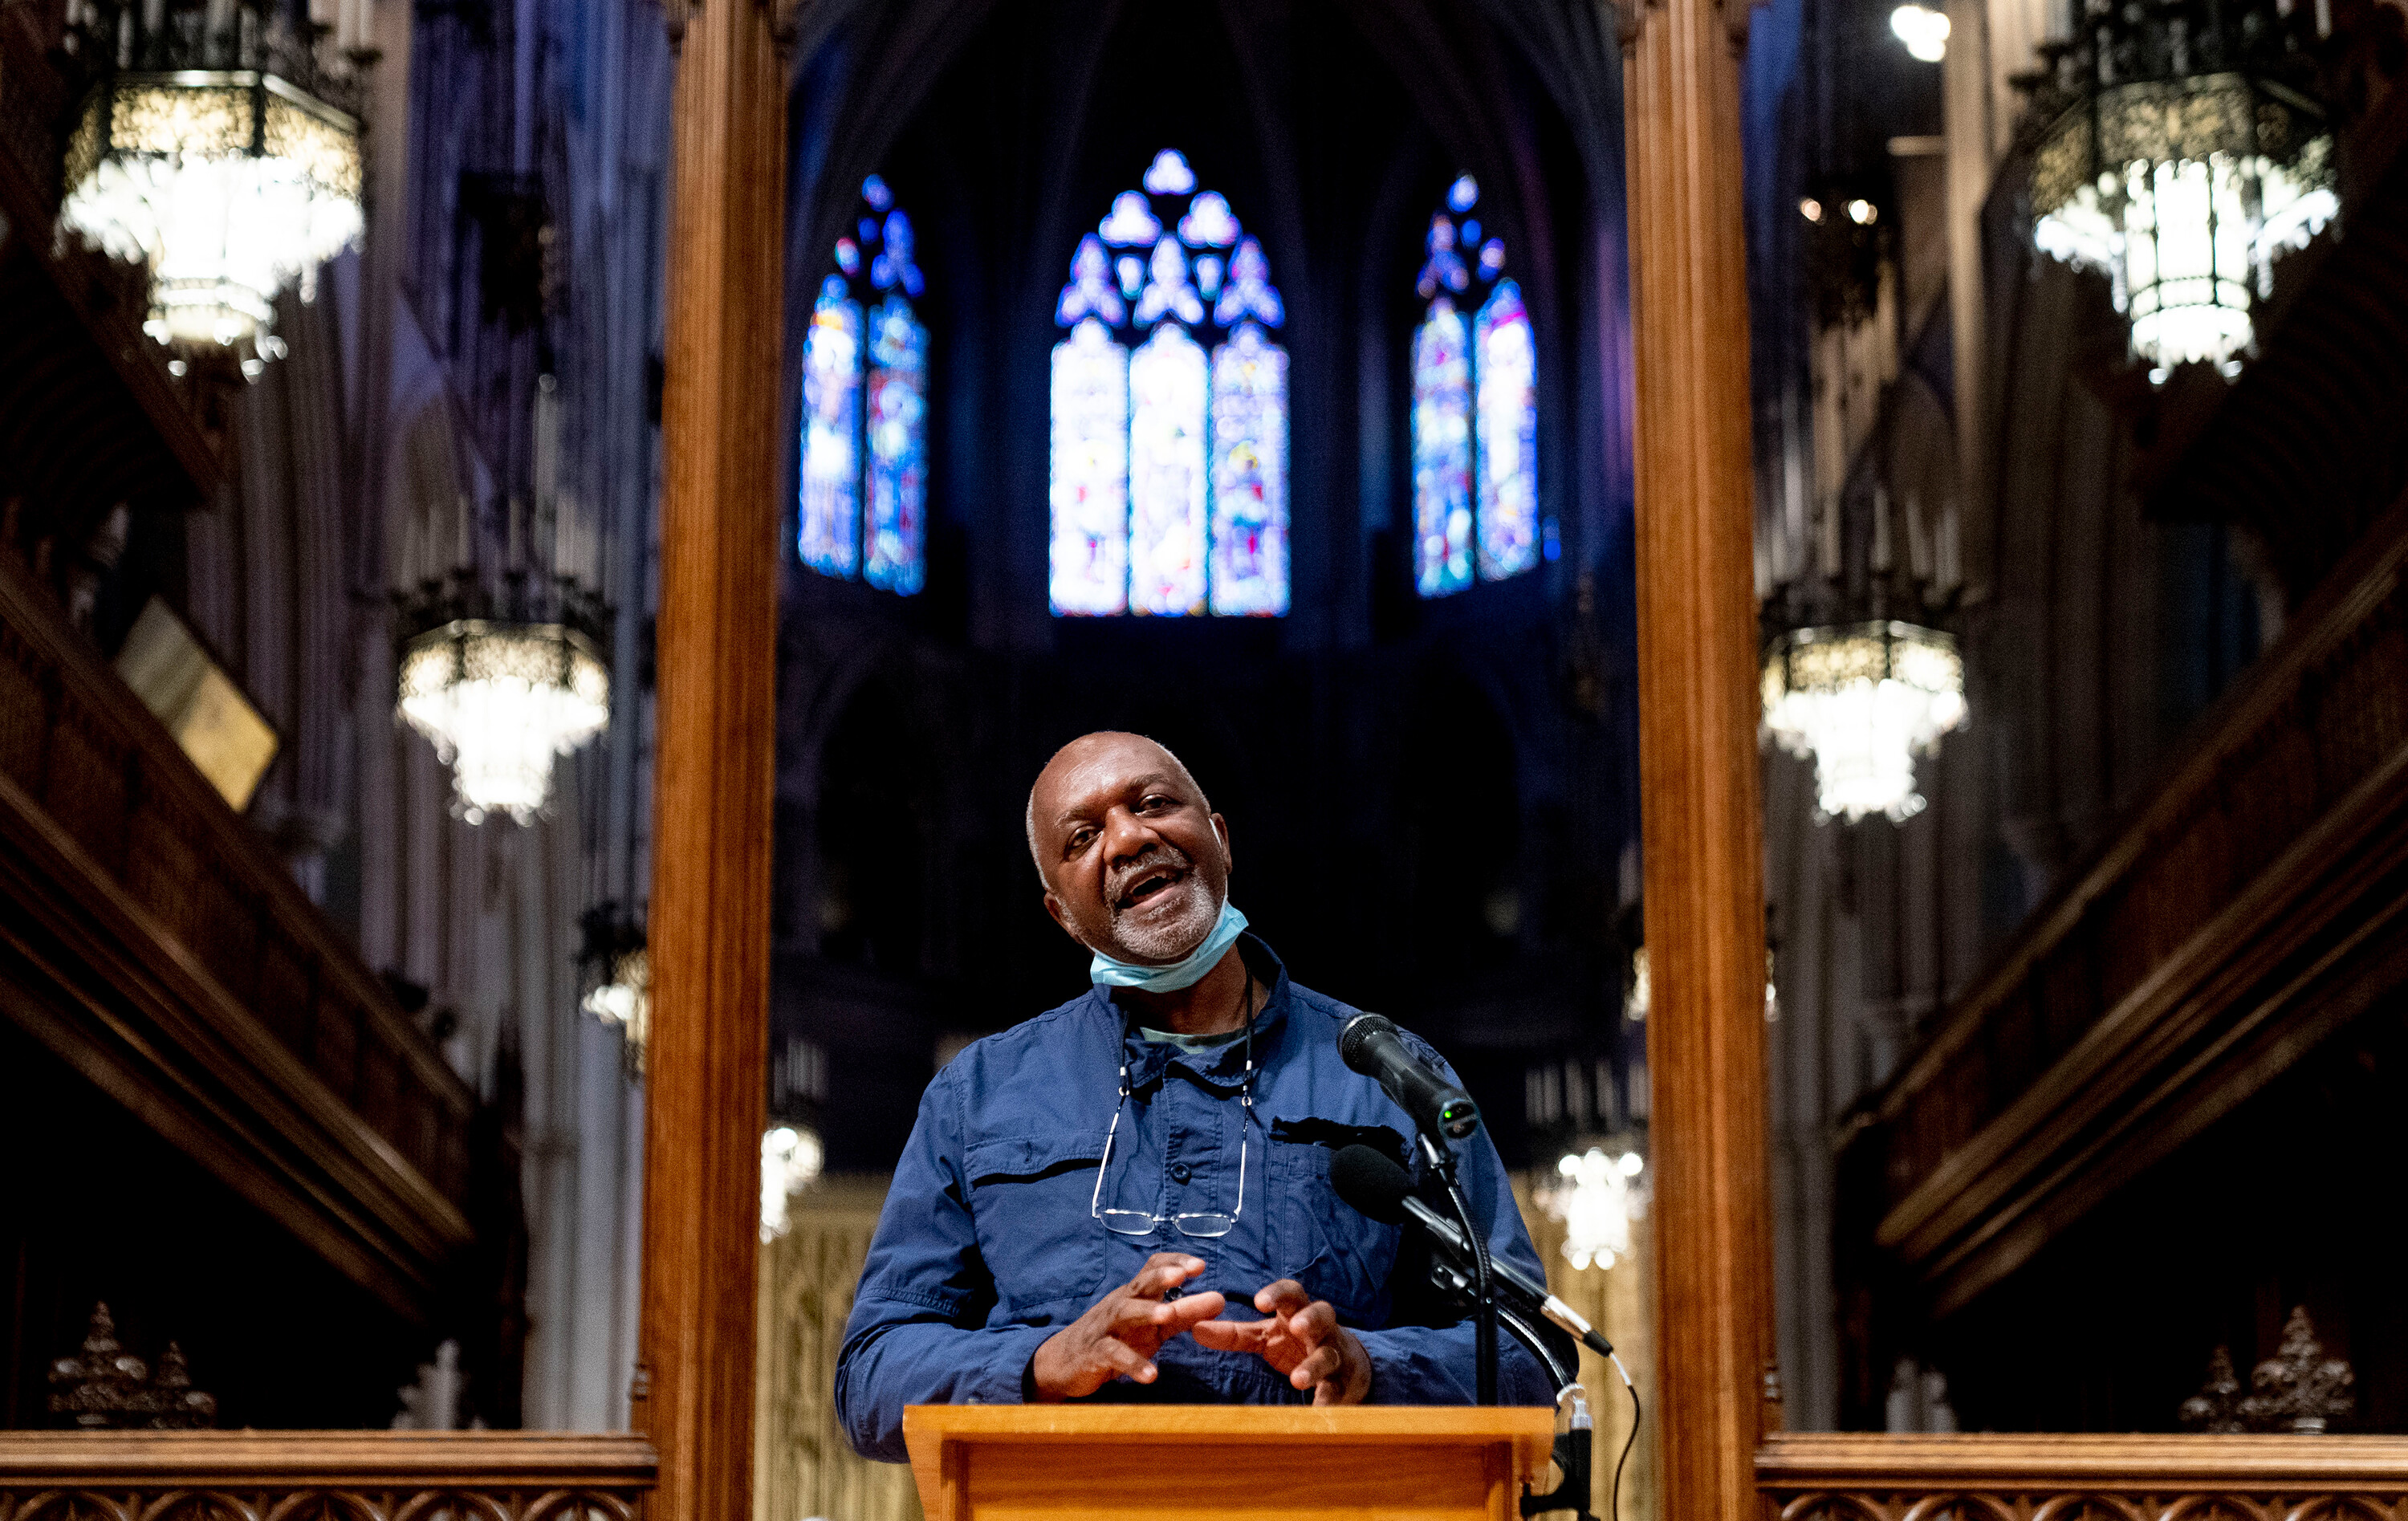 Kerry James Marshall to create 'racial-justice themed' windows for Washington National Cathedral